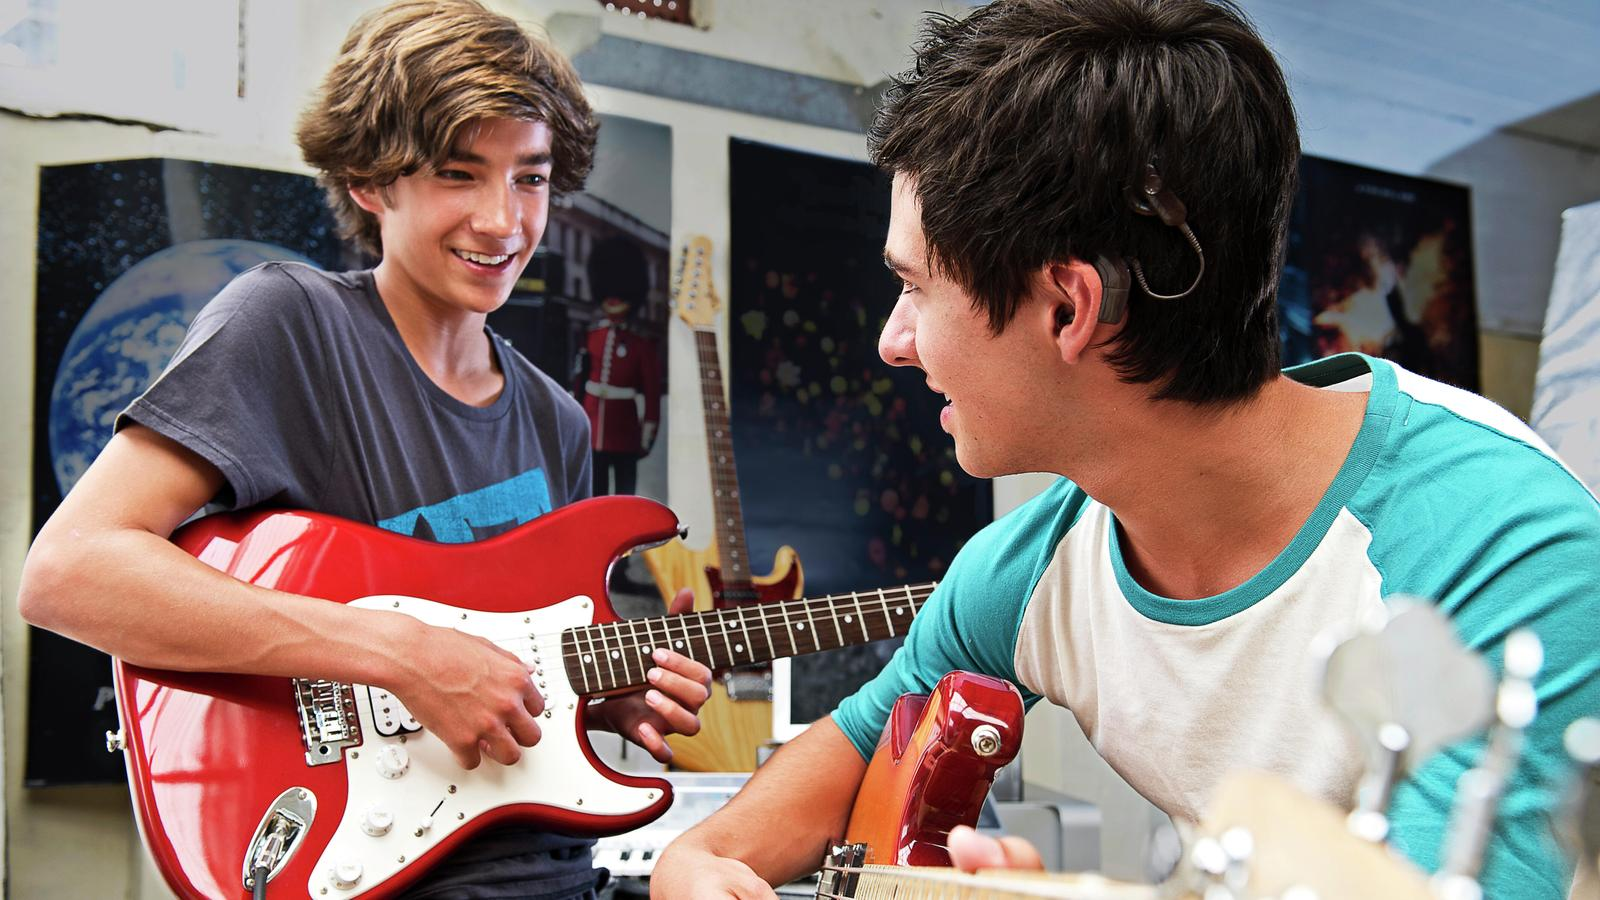 Cochlear recipient Christopher plays guitar with a friend